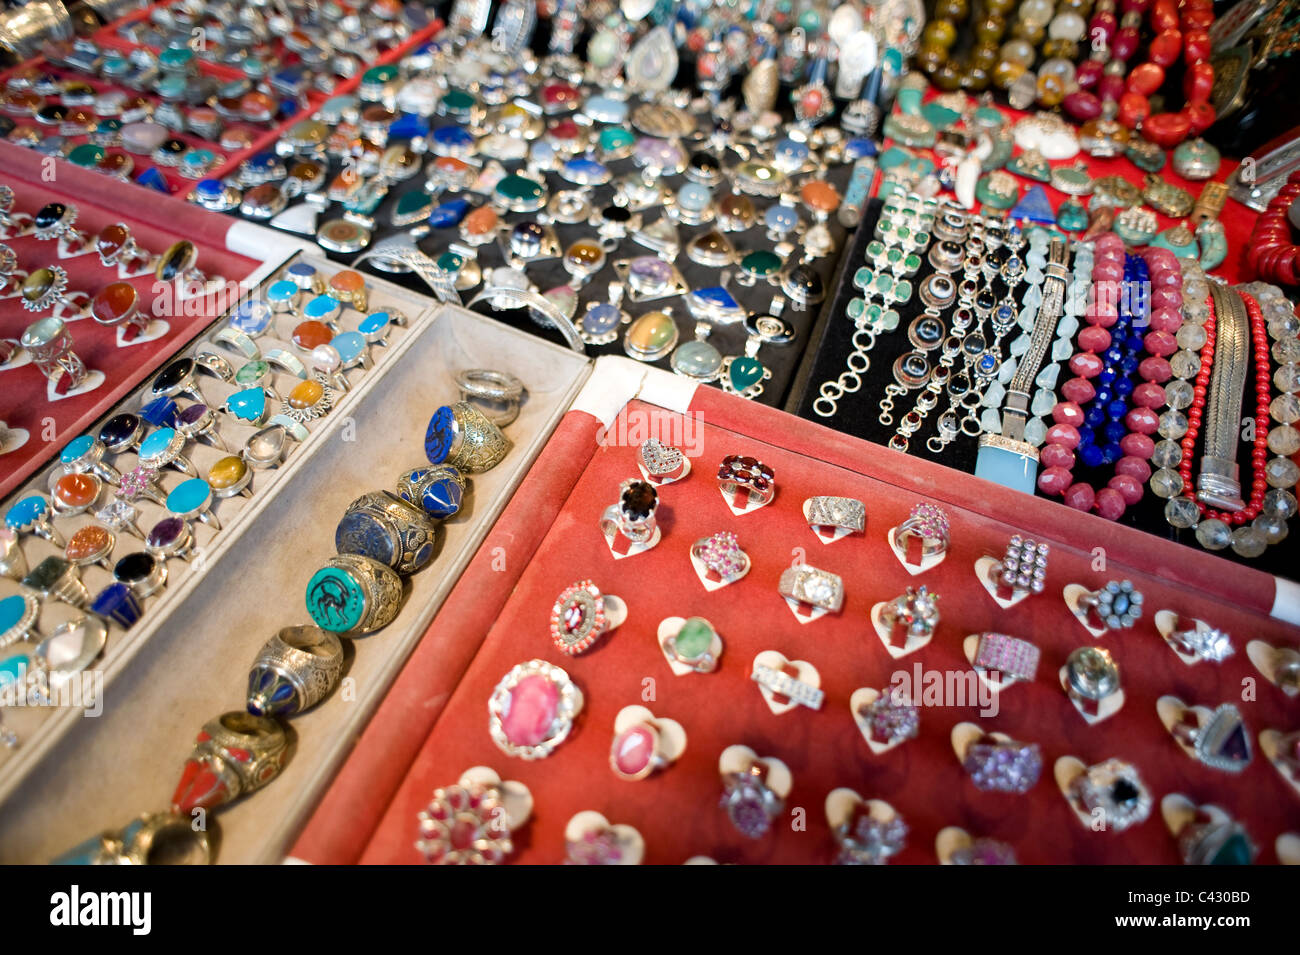 Hand-crafted jewellery on a market stall on Portobello Road, Notting Hill, London. - Stock Image